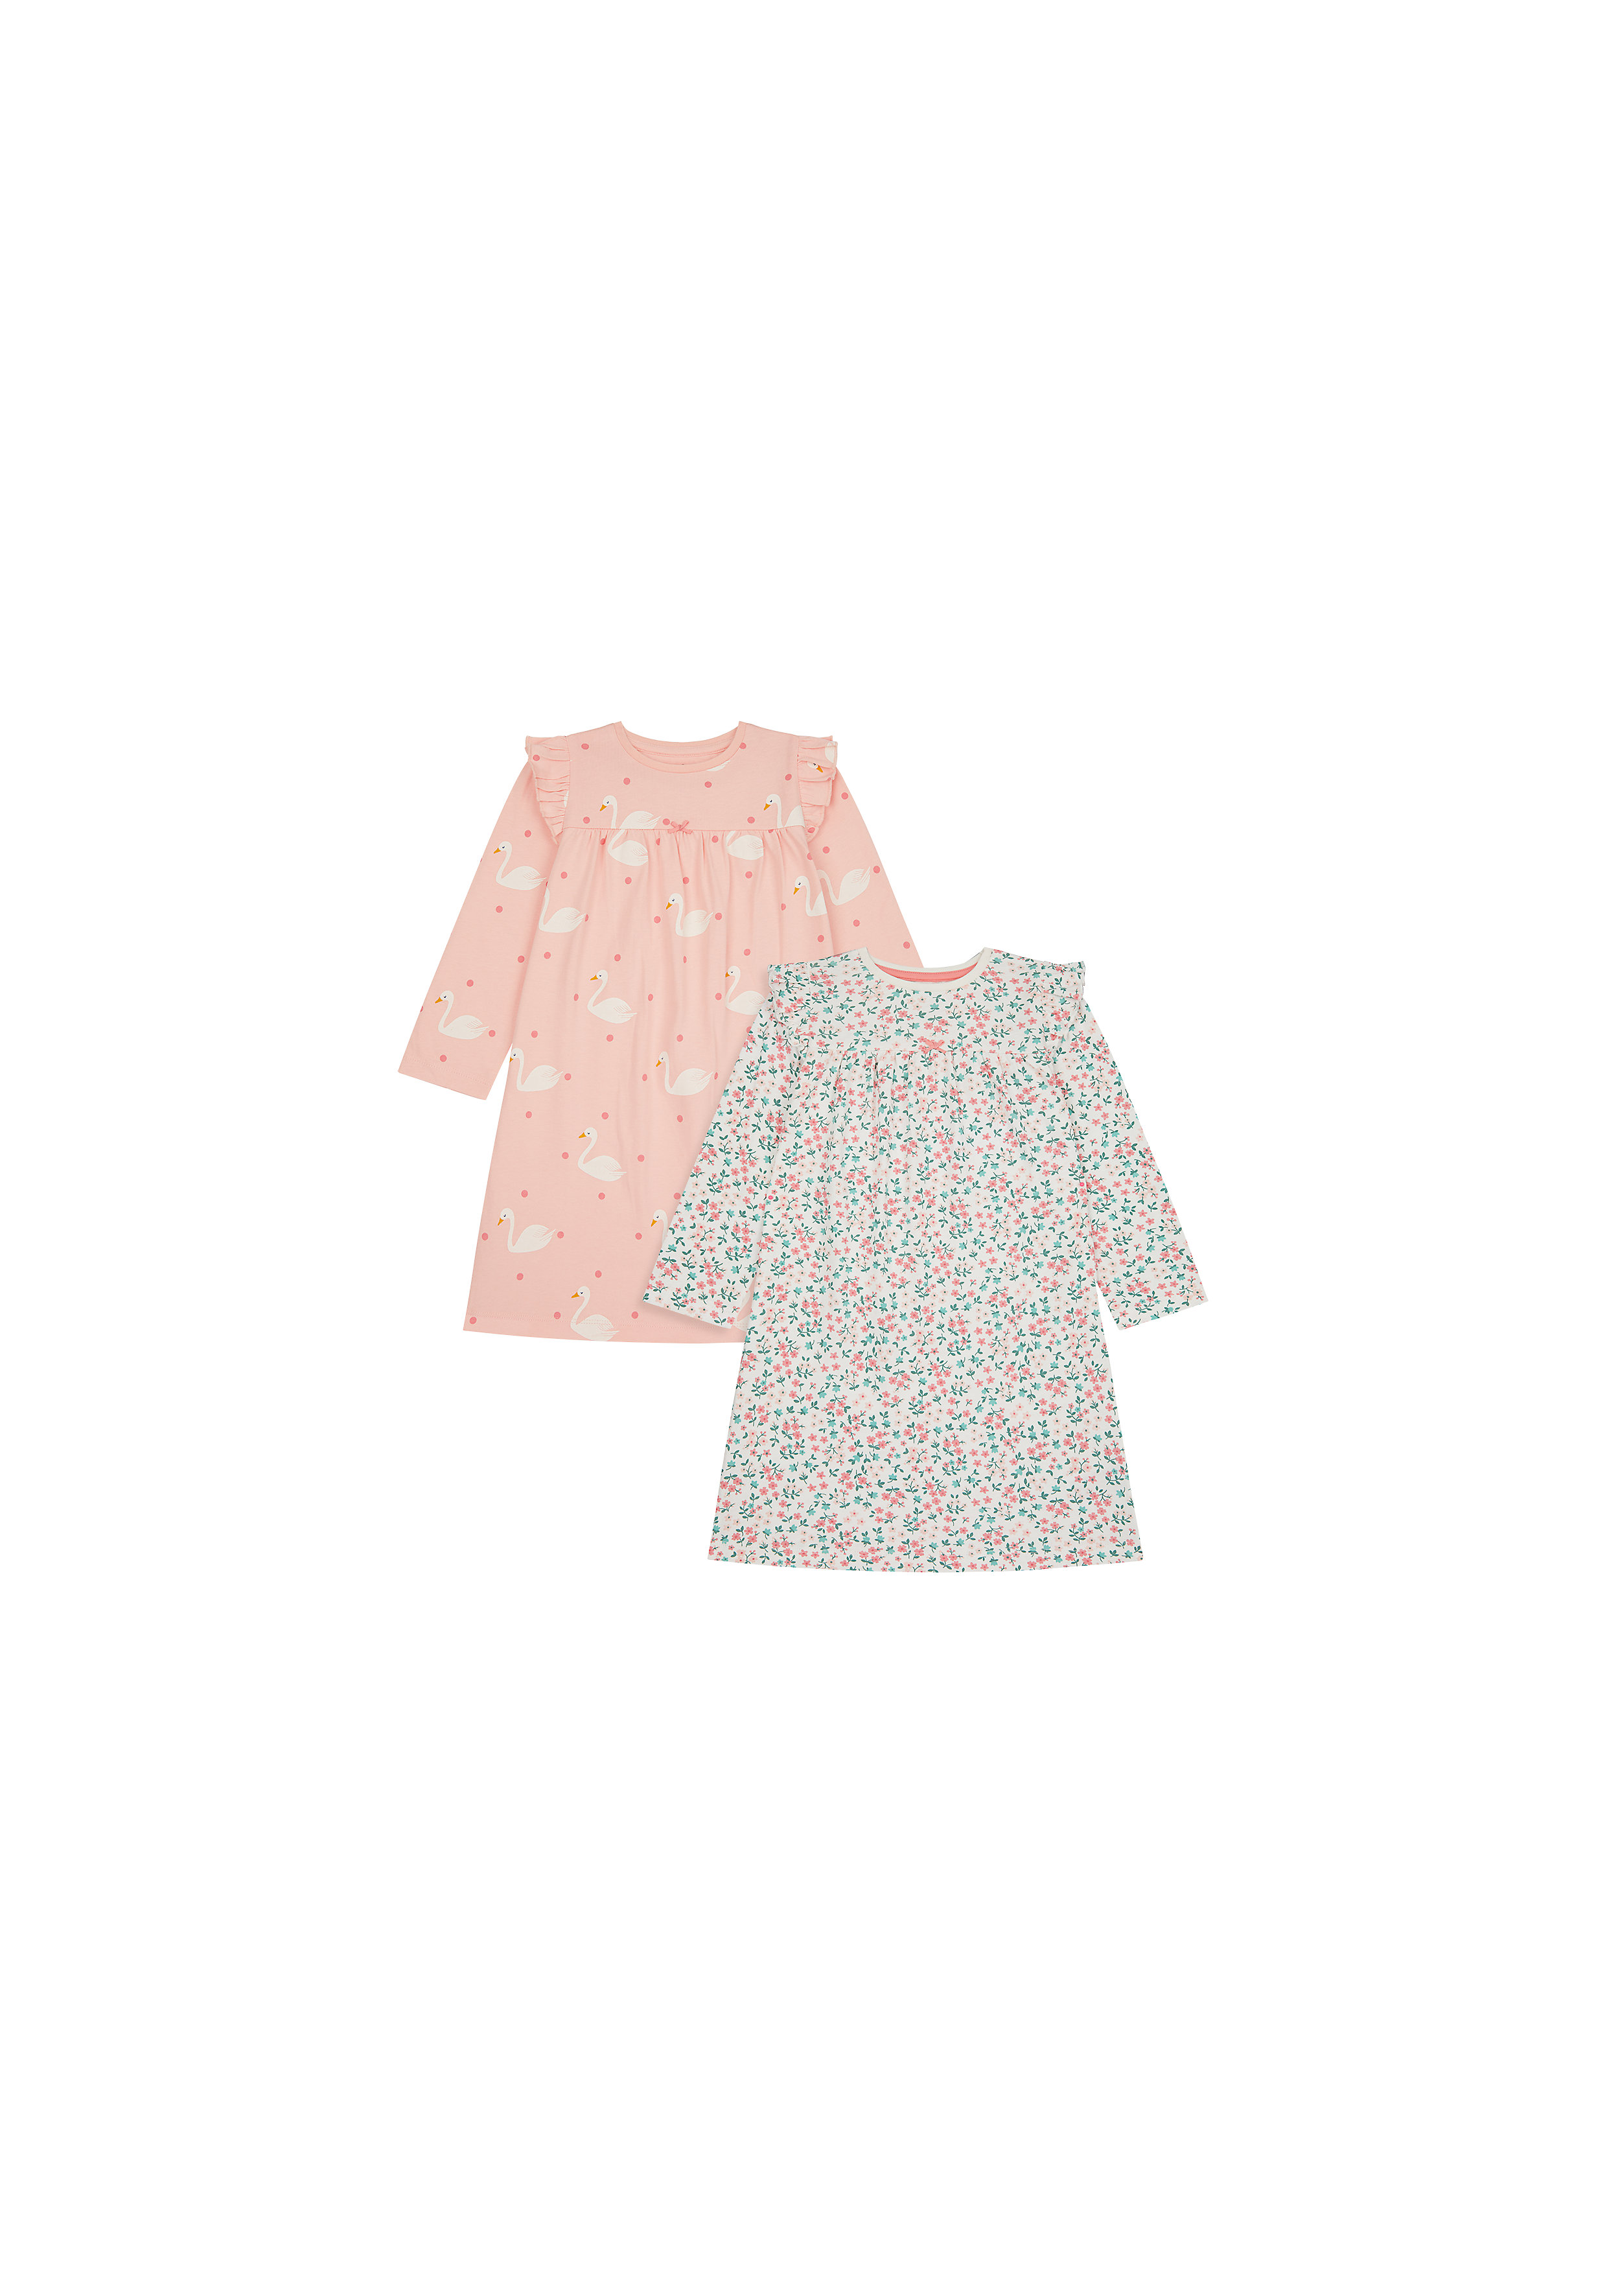 Mothercare | Girls Full Sleeves Nightdress Floral And Swan Print - Pack Of 2 - Pink White